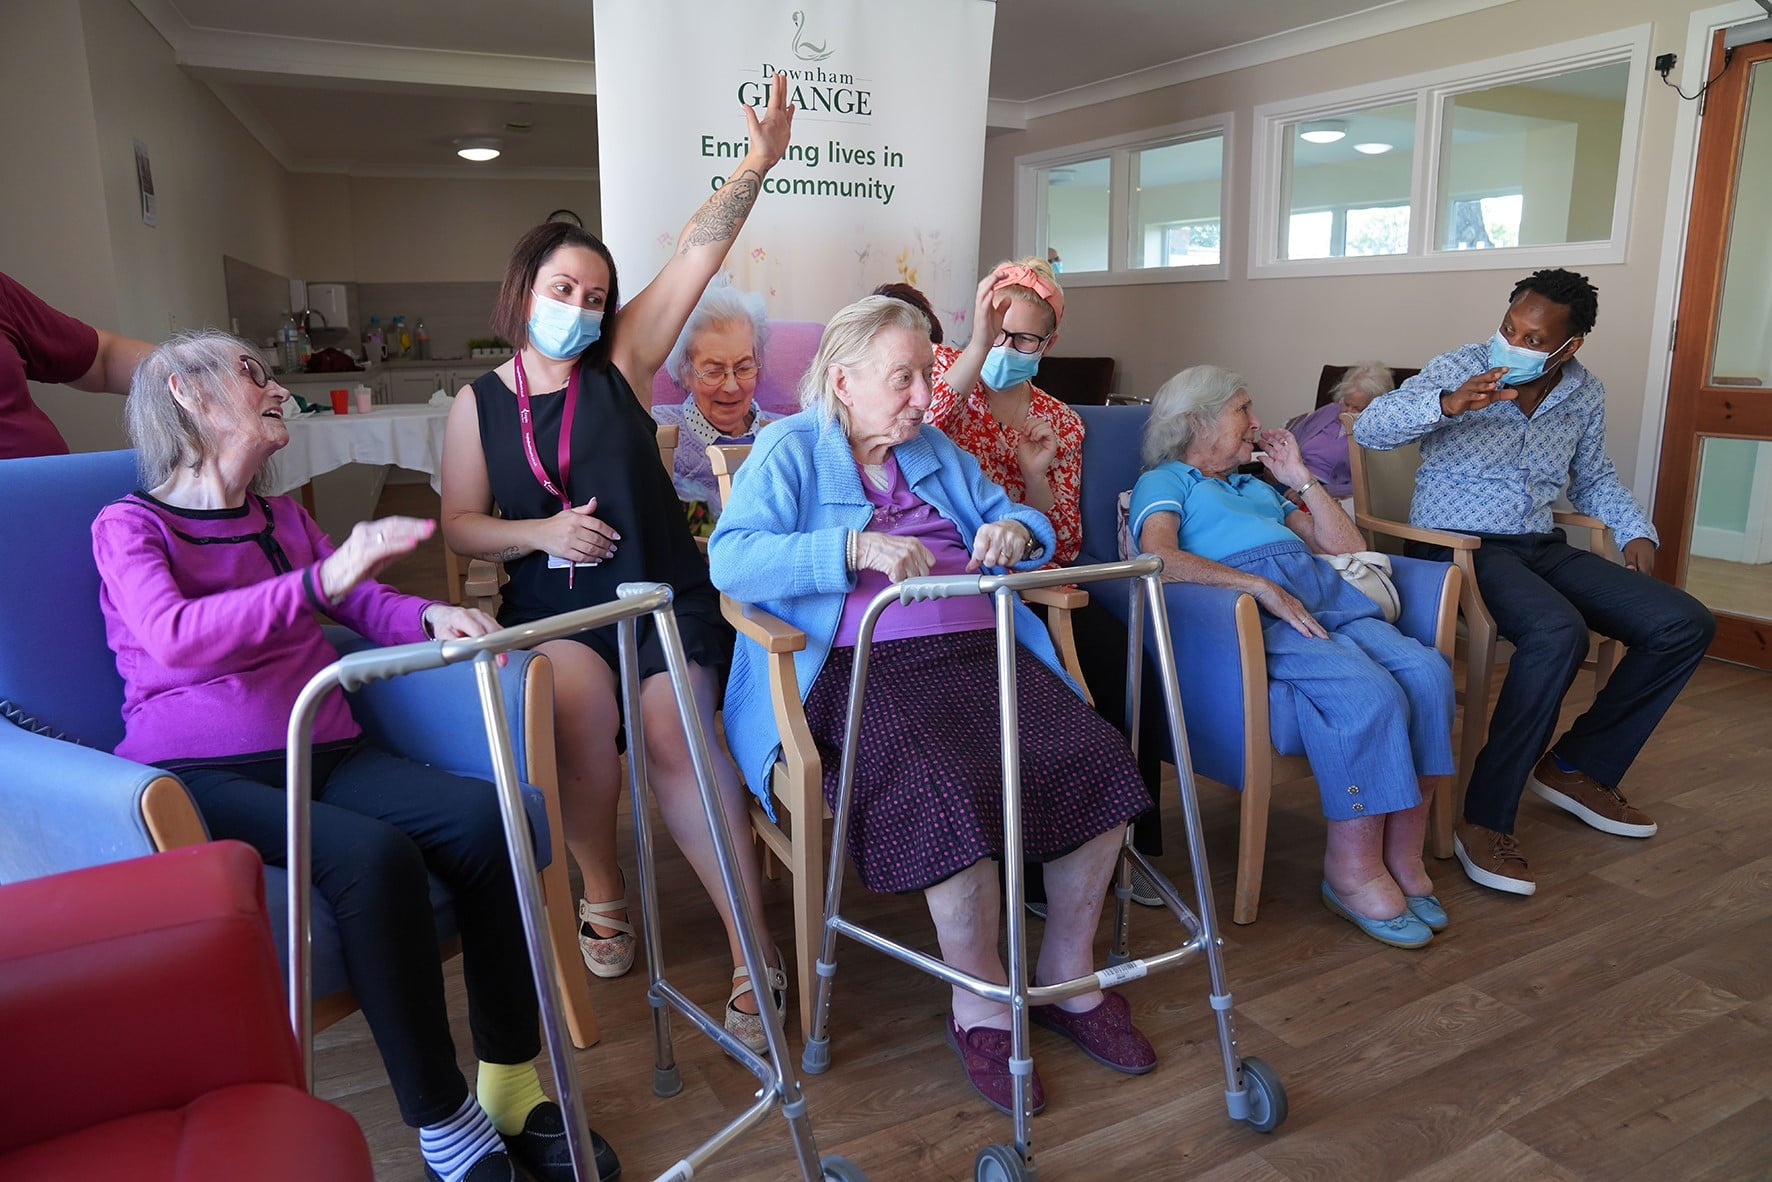 Kingsley protects care home staff and residents with 12 month stockpile of PPE